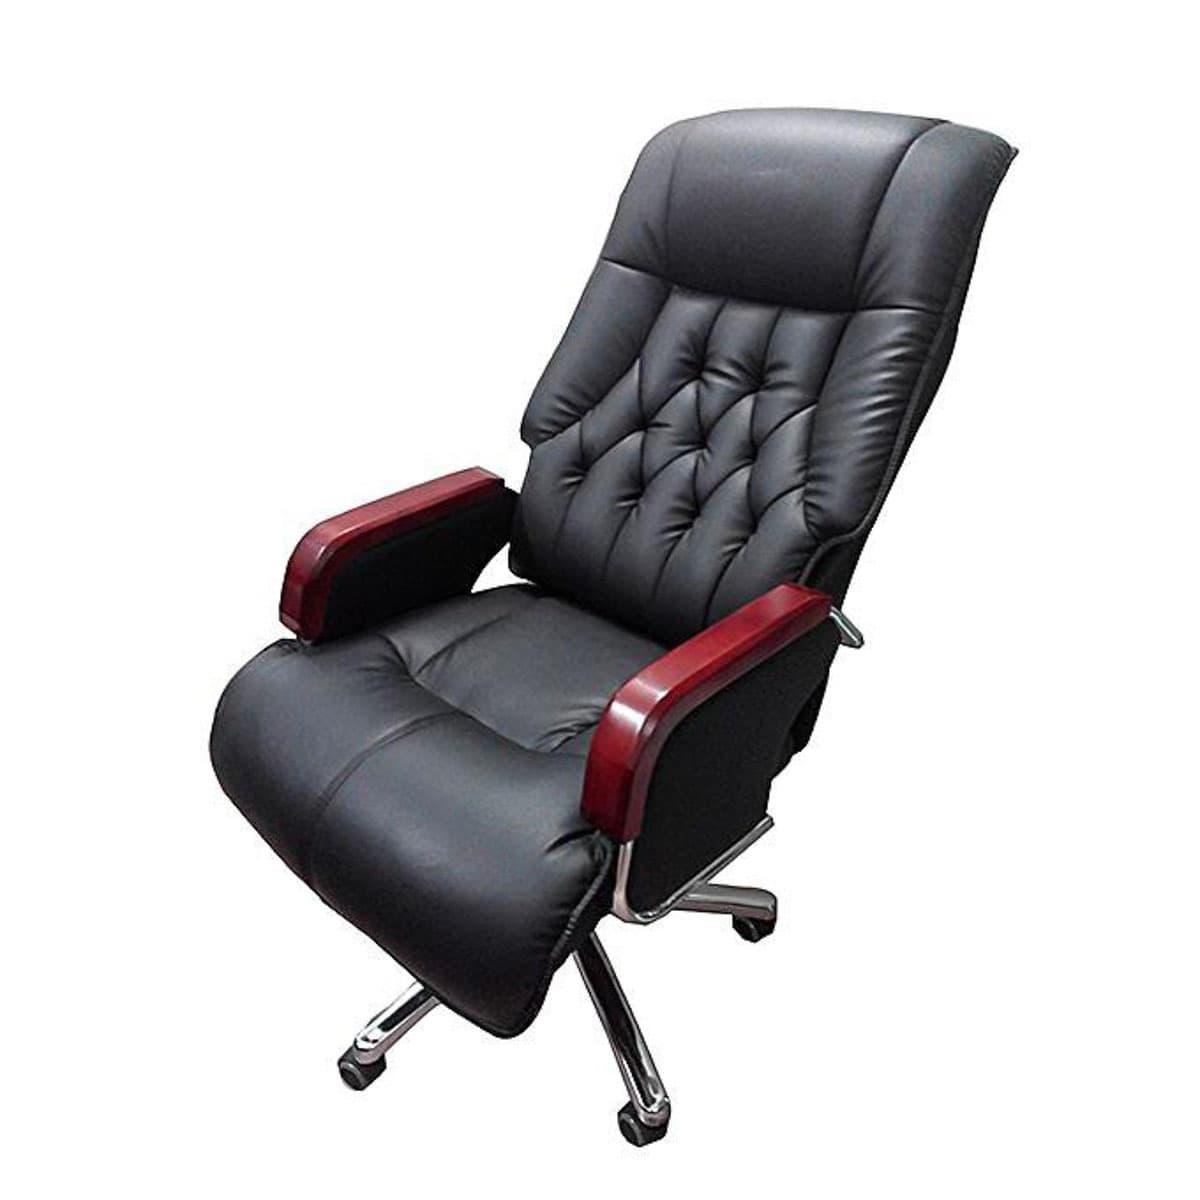 ergonomic chair bangladesh spider barber office chairs in at best price online daraz com bd sf 56 9563 vip boss slipping black